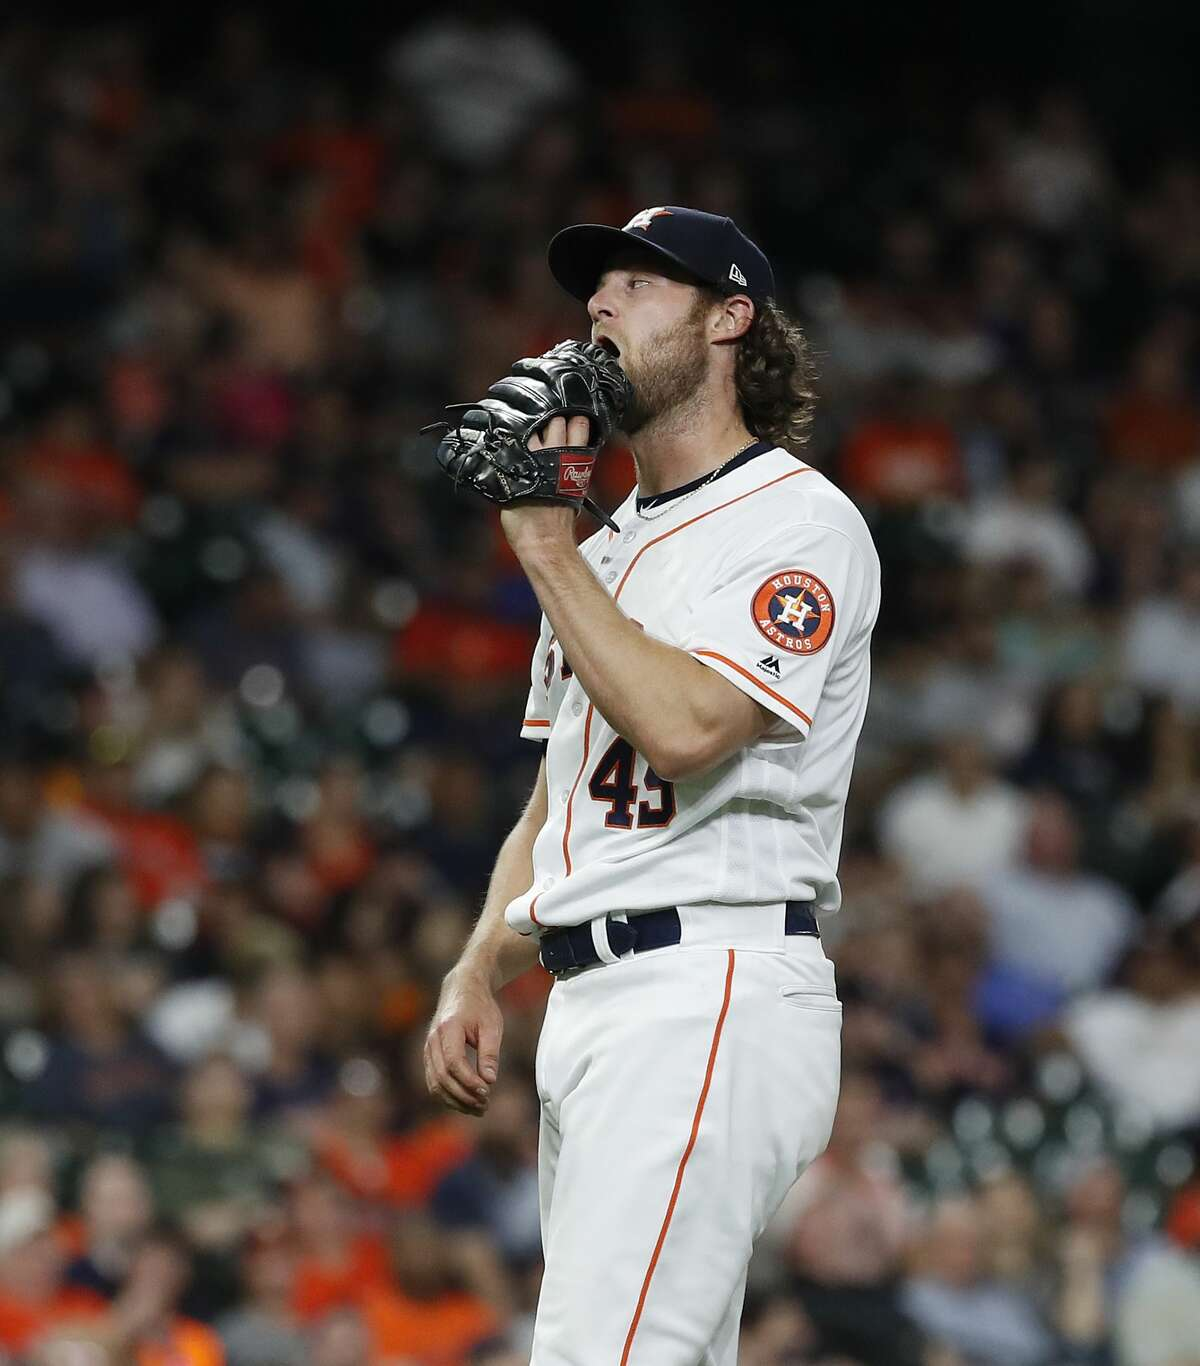 Houston Astros starting pitcher Gerrit Cole (45) reacts as he pitched against Cleveland Indians Roberto Perez during the seventh inning of an MLB baseball game at Minute Maid Park, in Houston, Thursday, April 25, 2019.